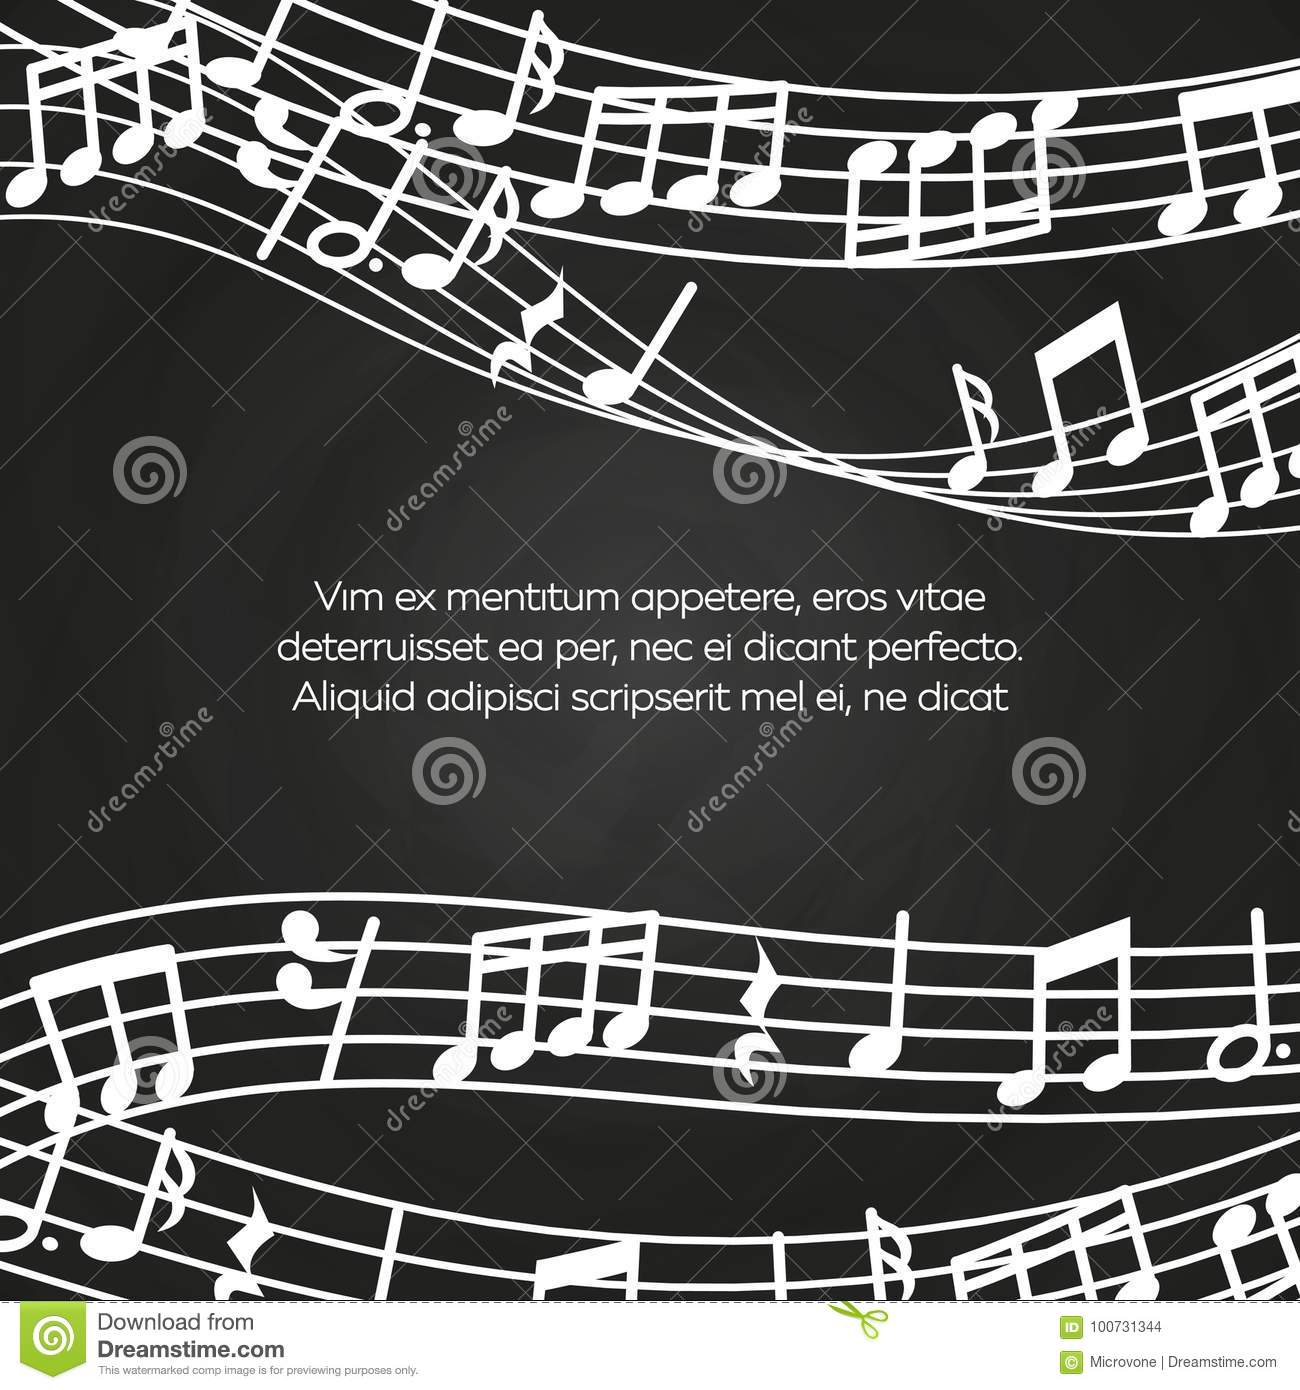 Musical blackboard background design - chalkboard with music notes and waves